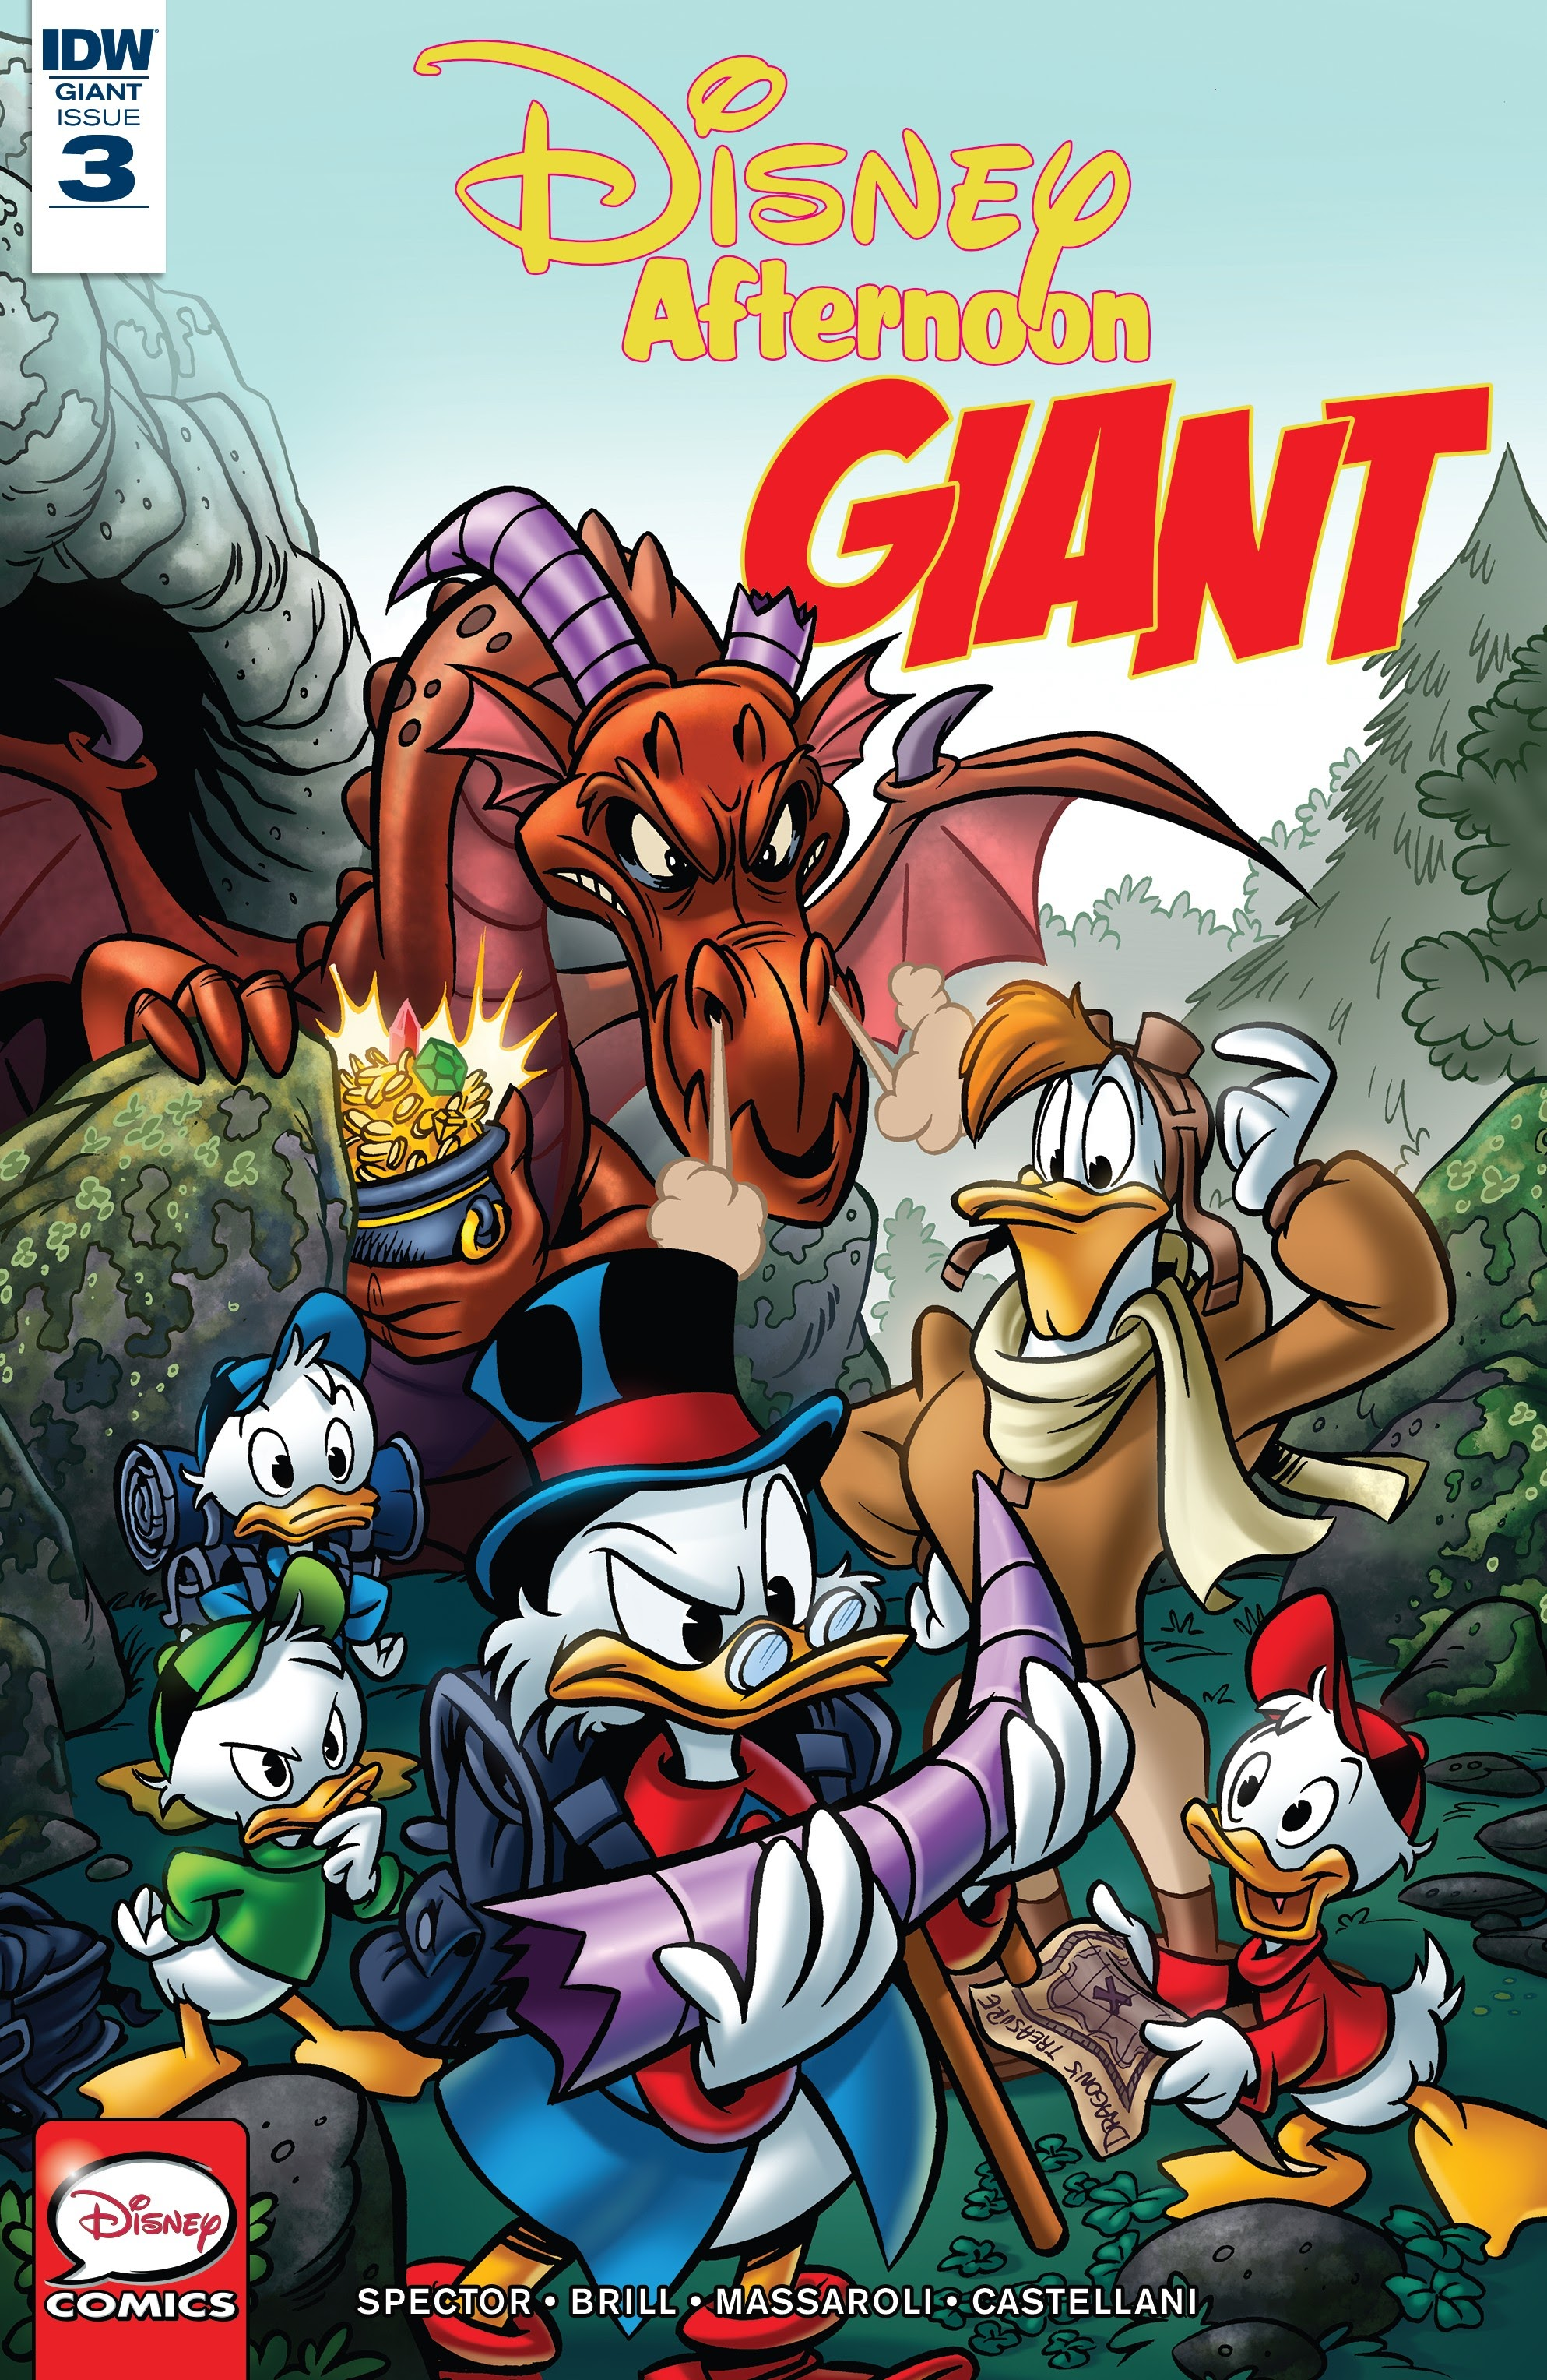 Disney Afternoon Giant 3 Page 1